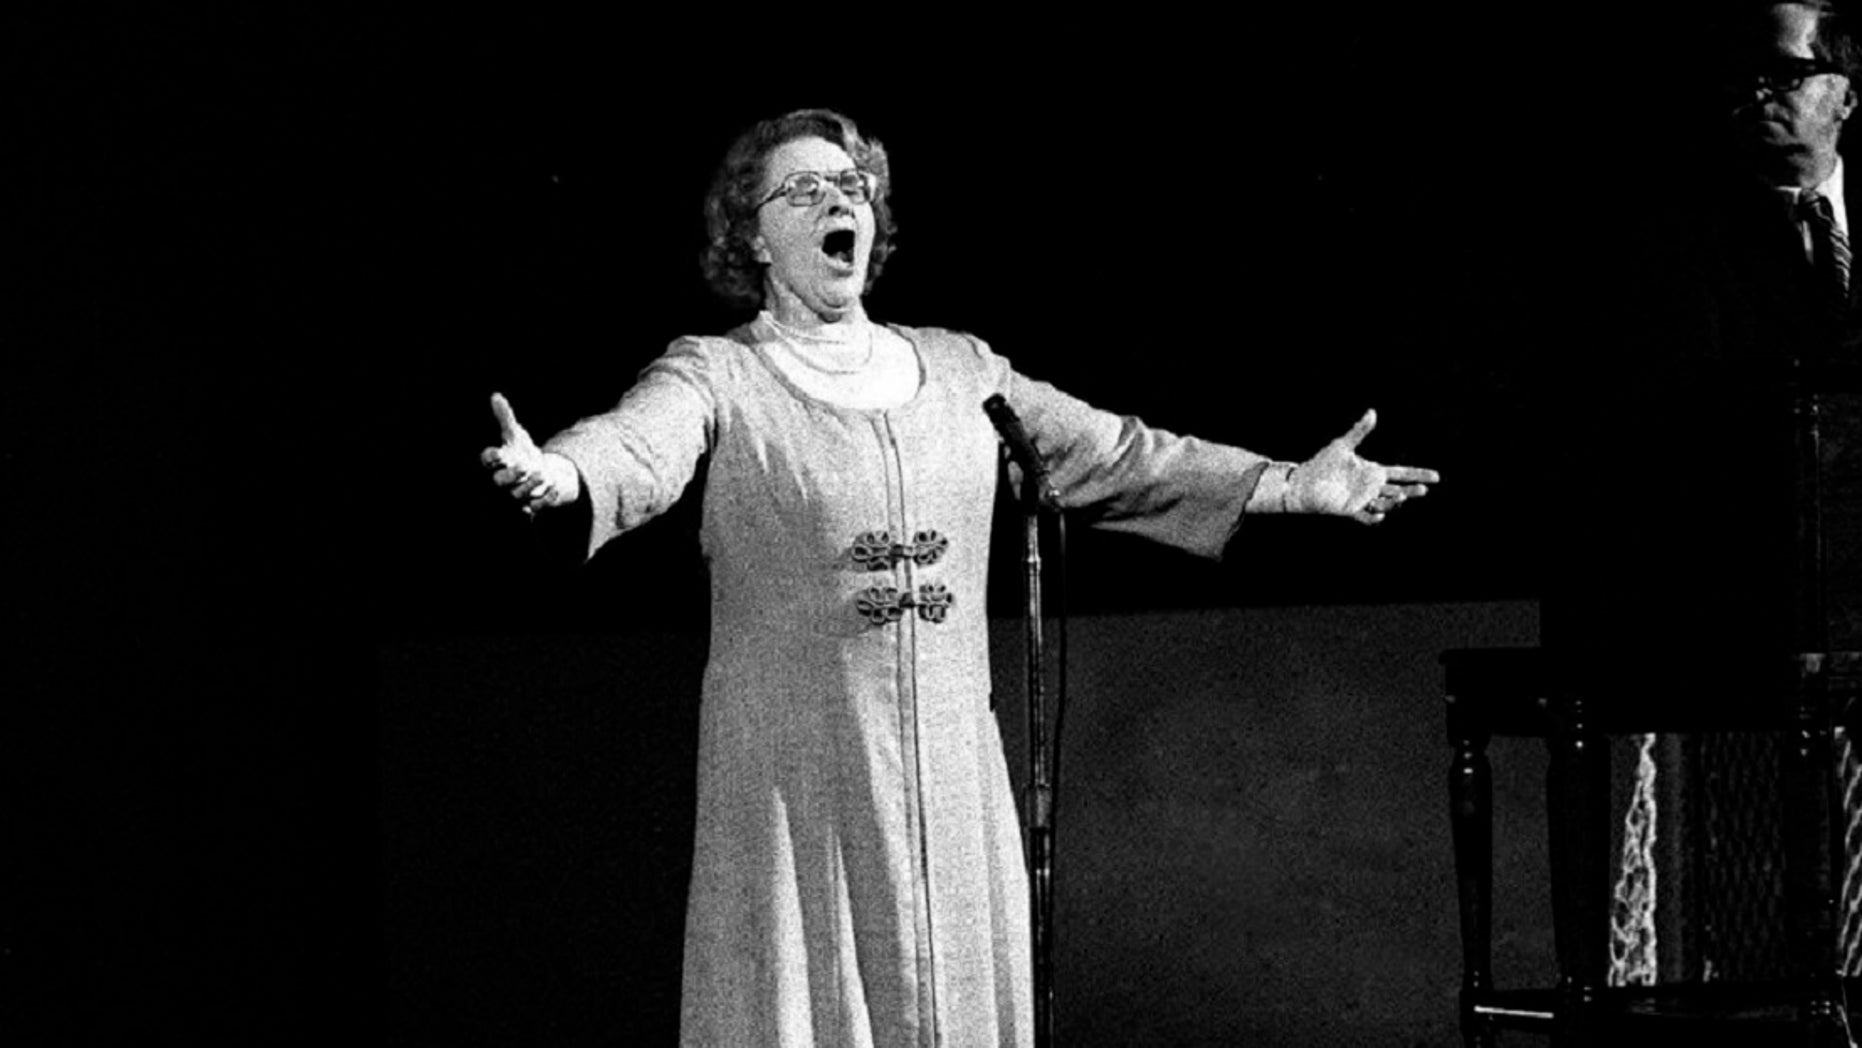 Flyers stop playing Kate Smith recording after racist songs come to light